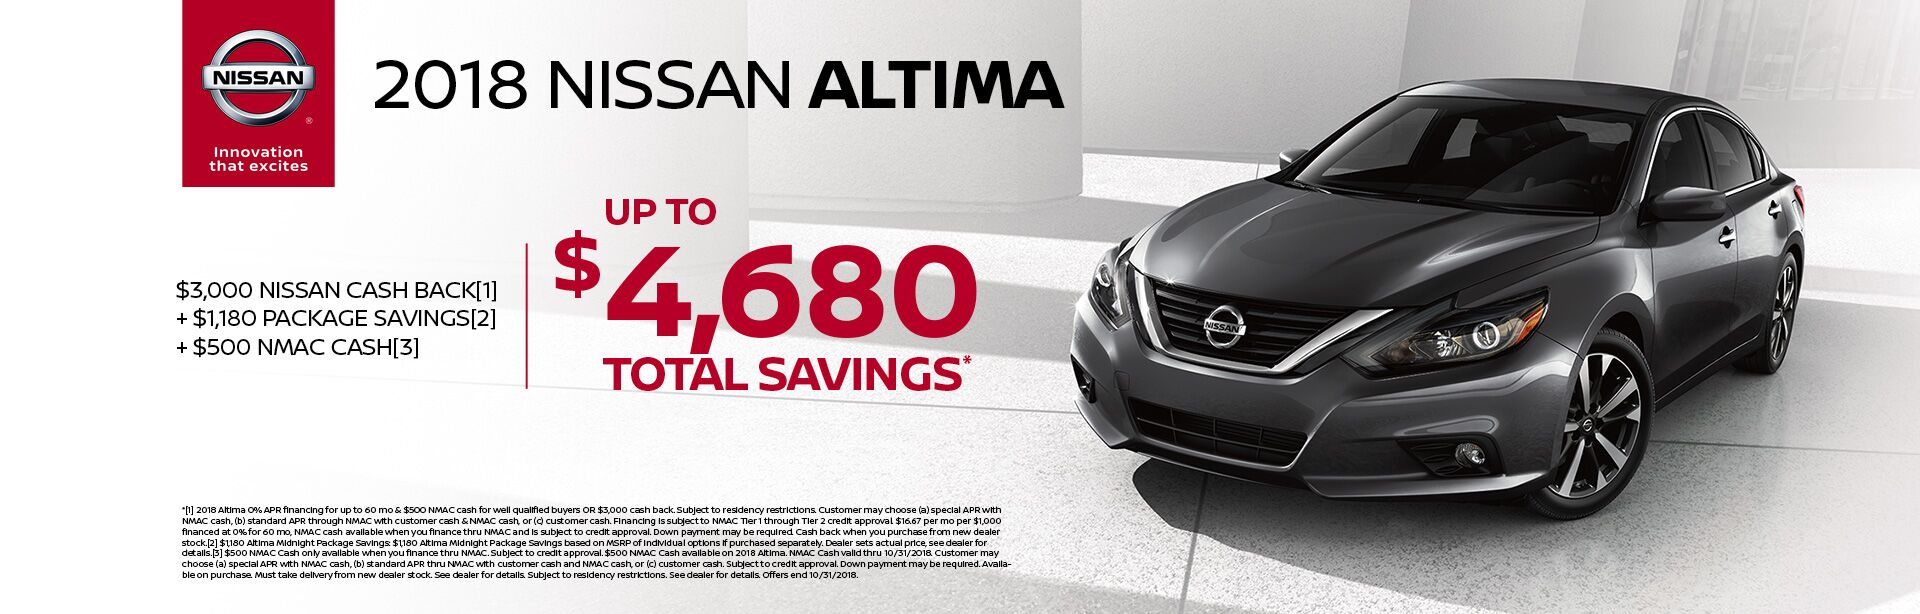 Beautiful 2018 Nissan Altima